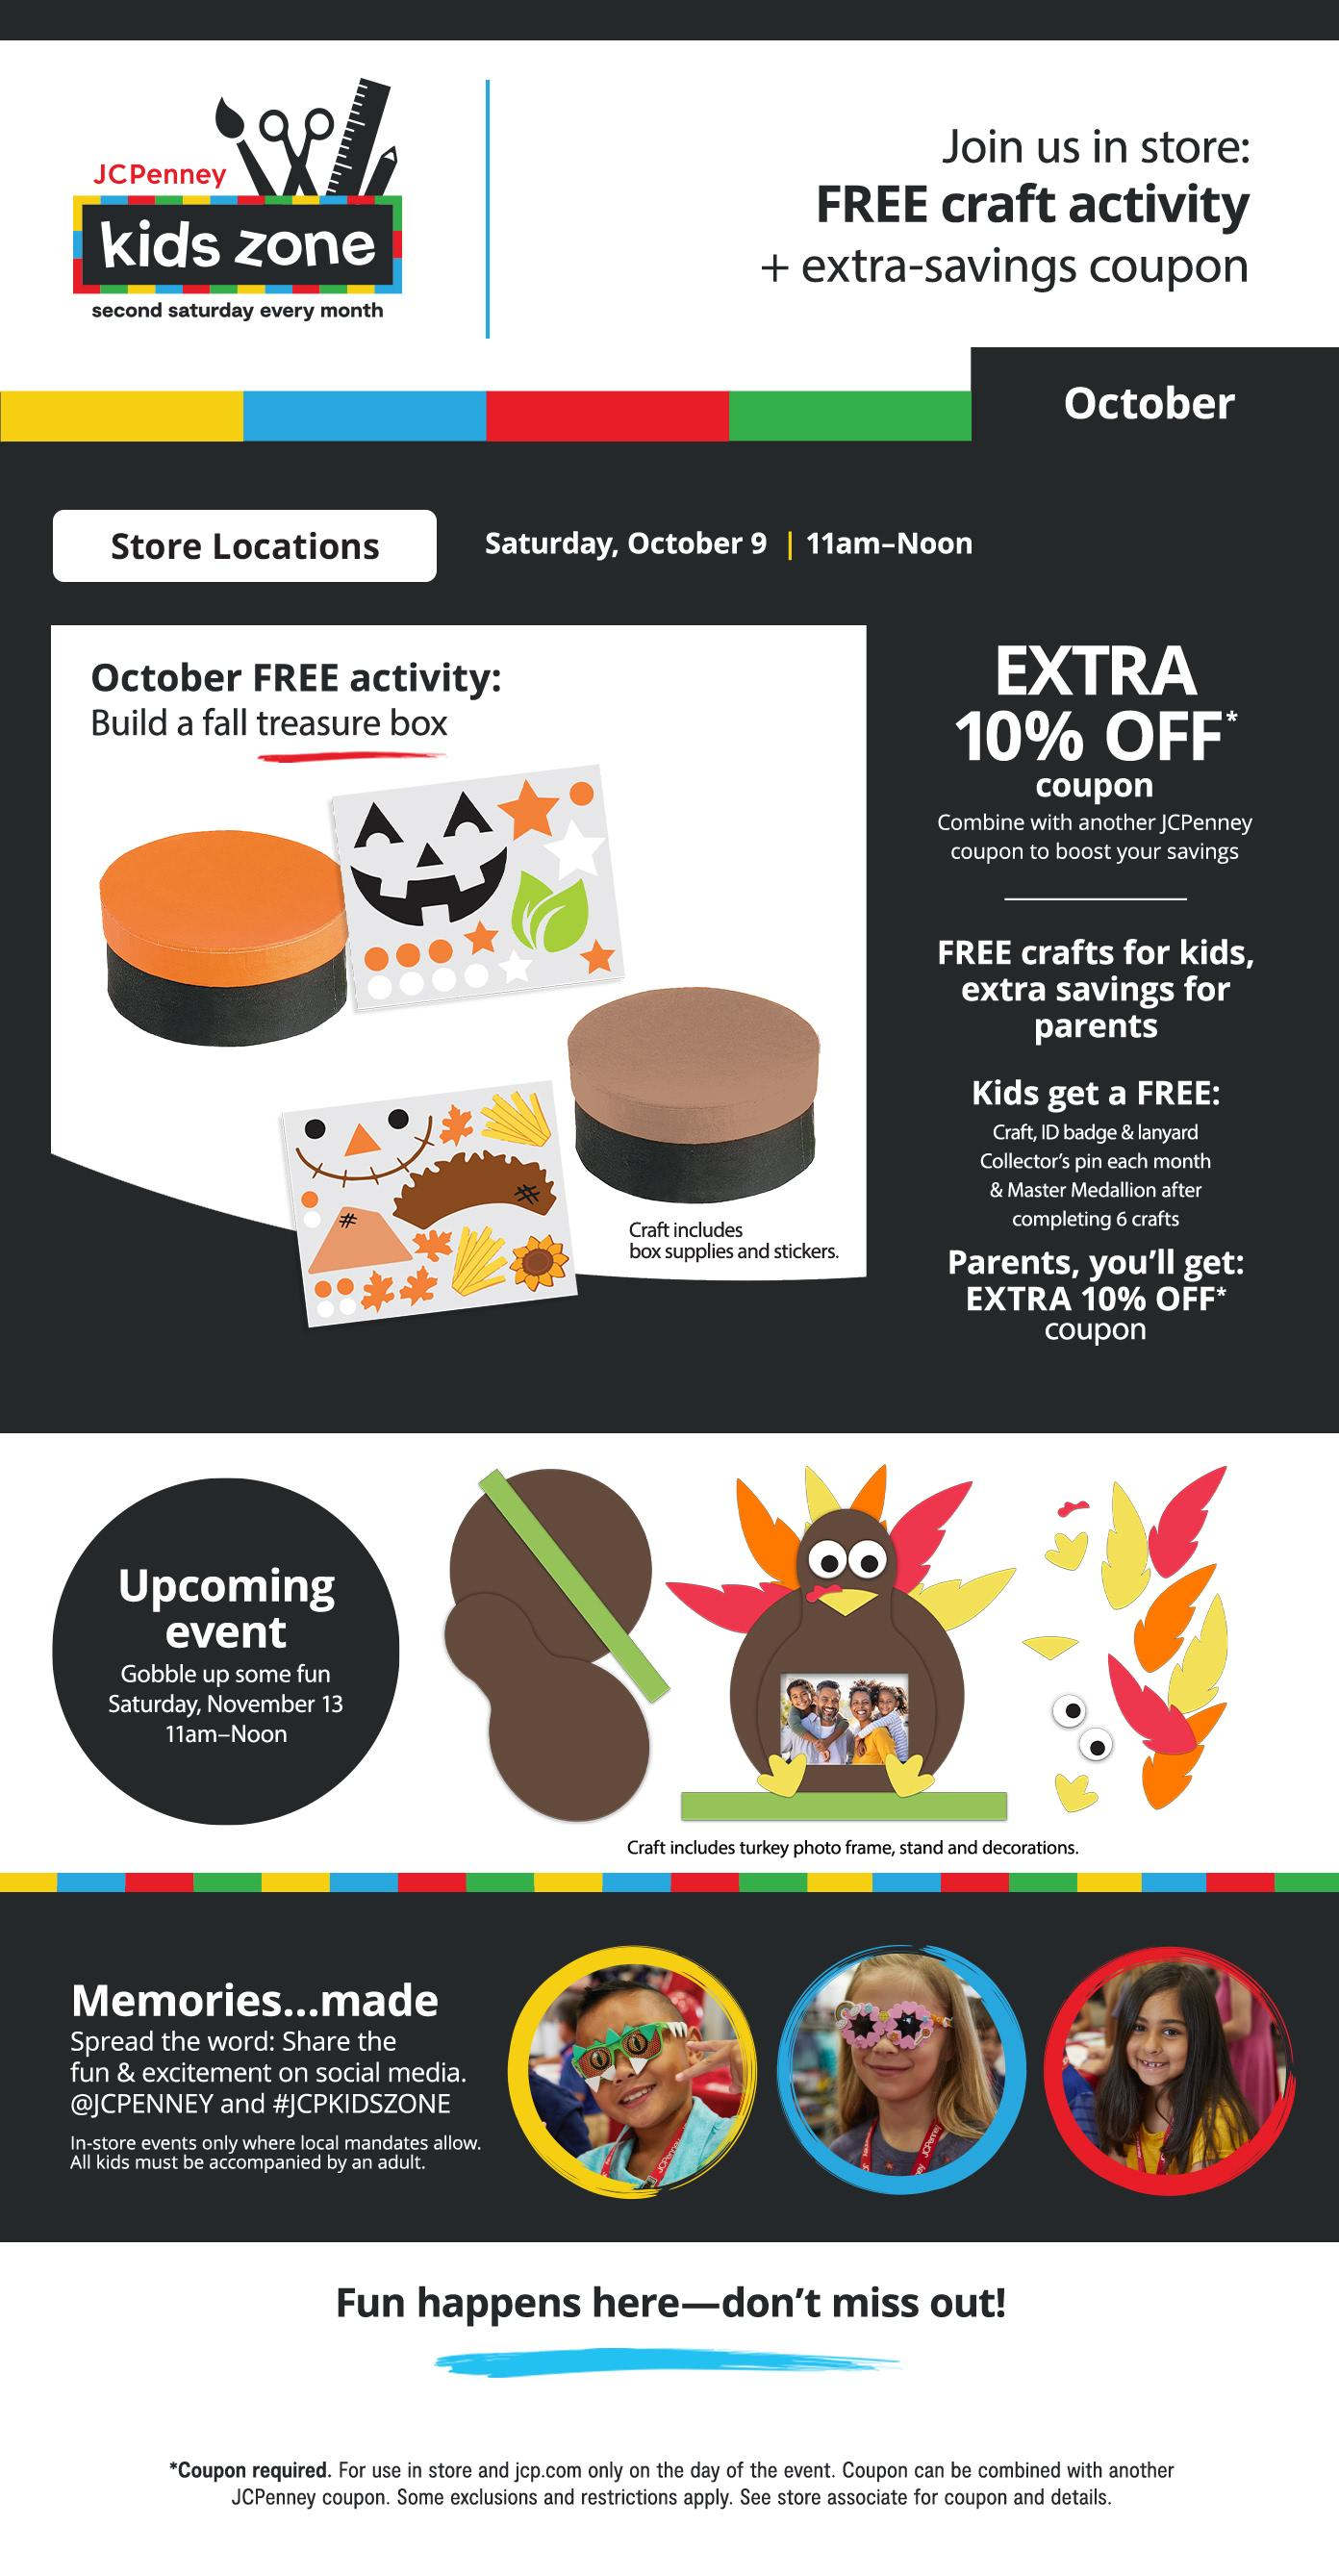 Kid's Zone Join us in store: FREE craft activity + extra-savings coupon Saturday October 9th 11am - Noon